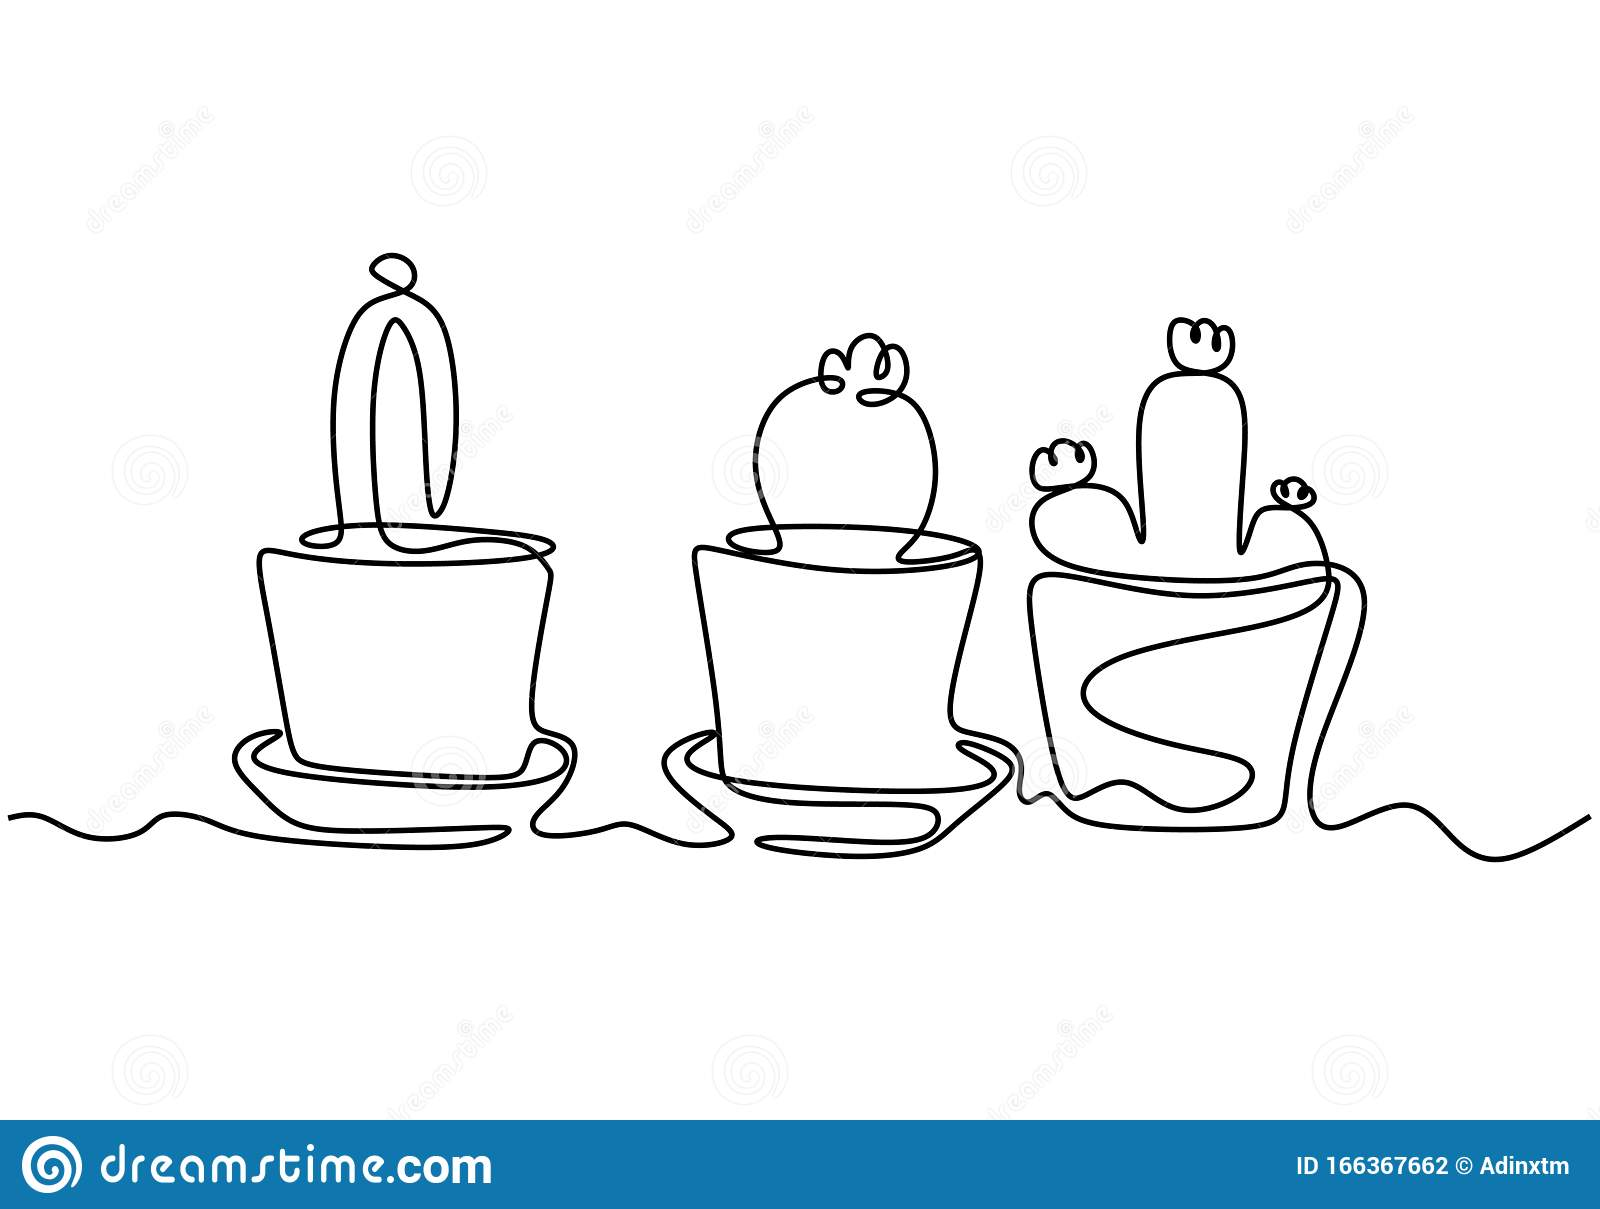 Lineart Succulents Stock Illustrations 44 Lineart Succulents Stock Illustrations Vectors Clipart Dreamstime